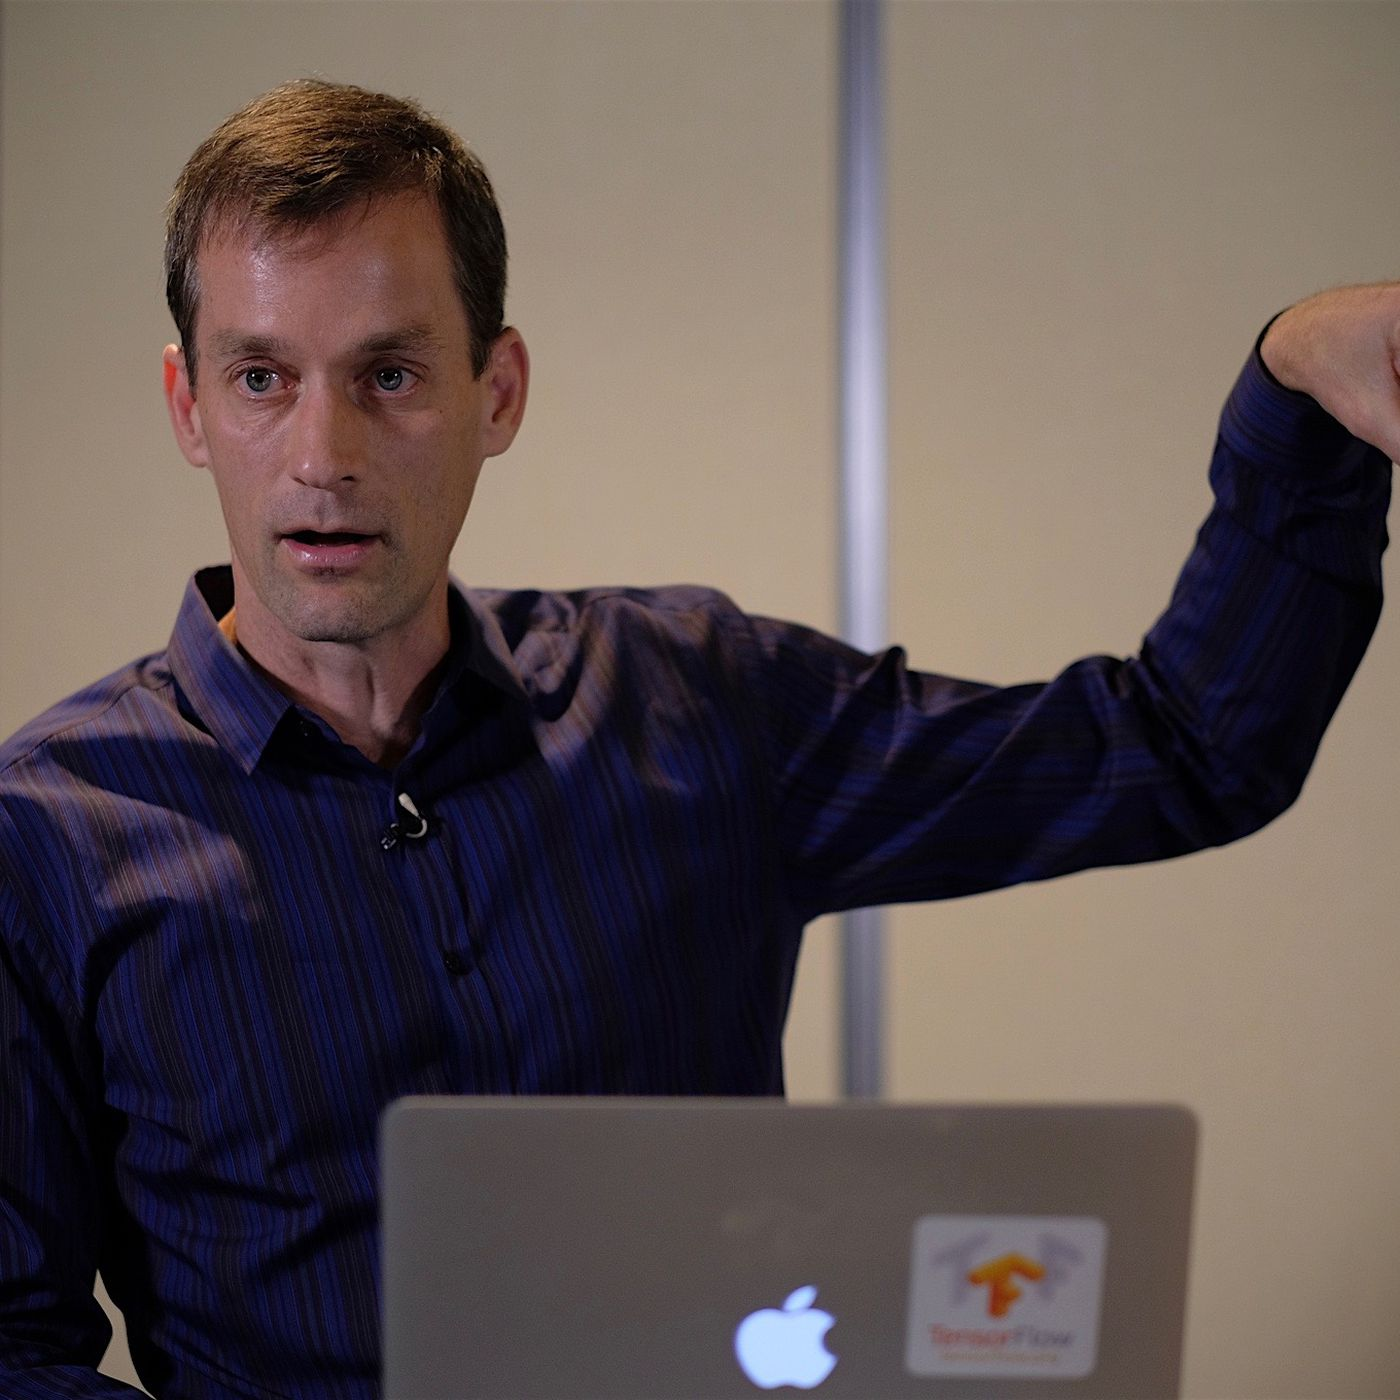 Google veteran Jeff Dean takes over as company's AI chief - The Verge